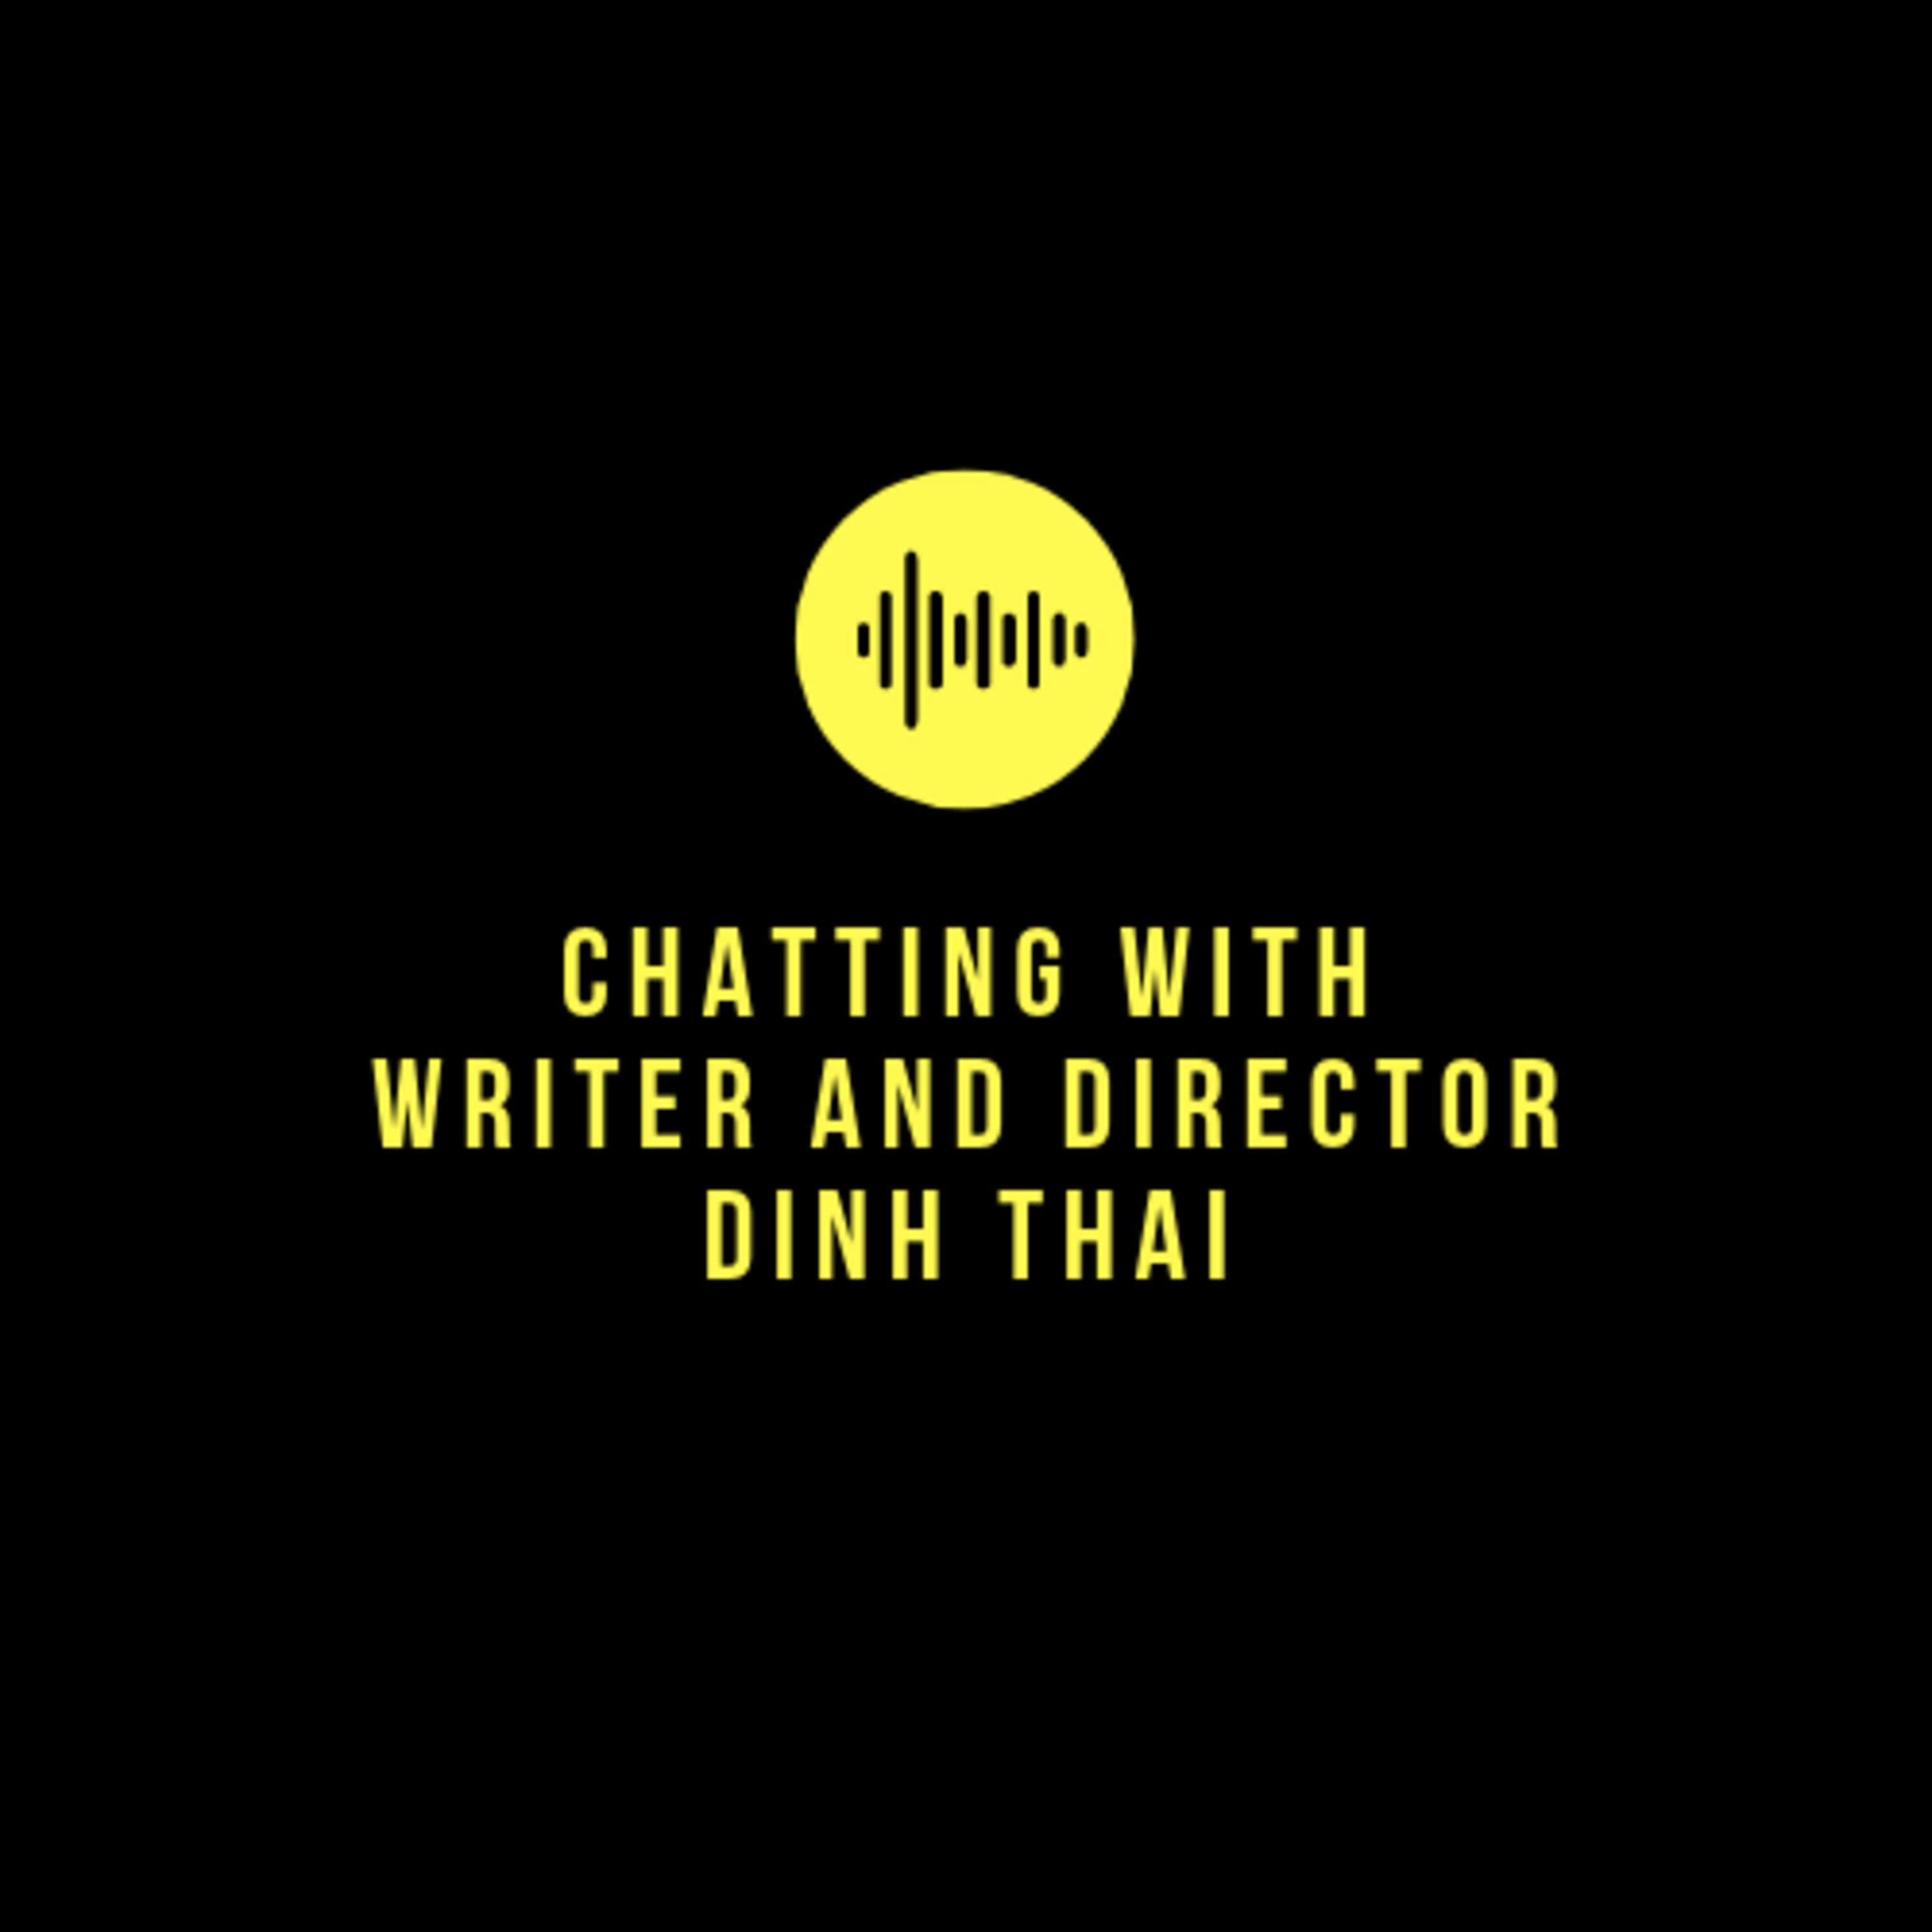 9. Chatting with Dinh Thai, Writer and Director - Part 2